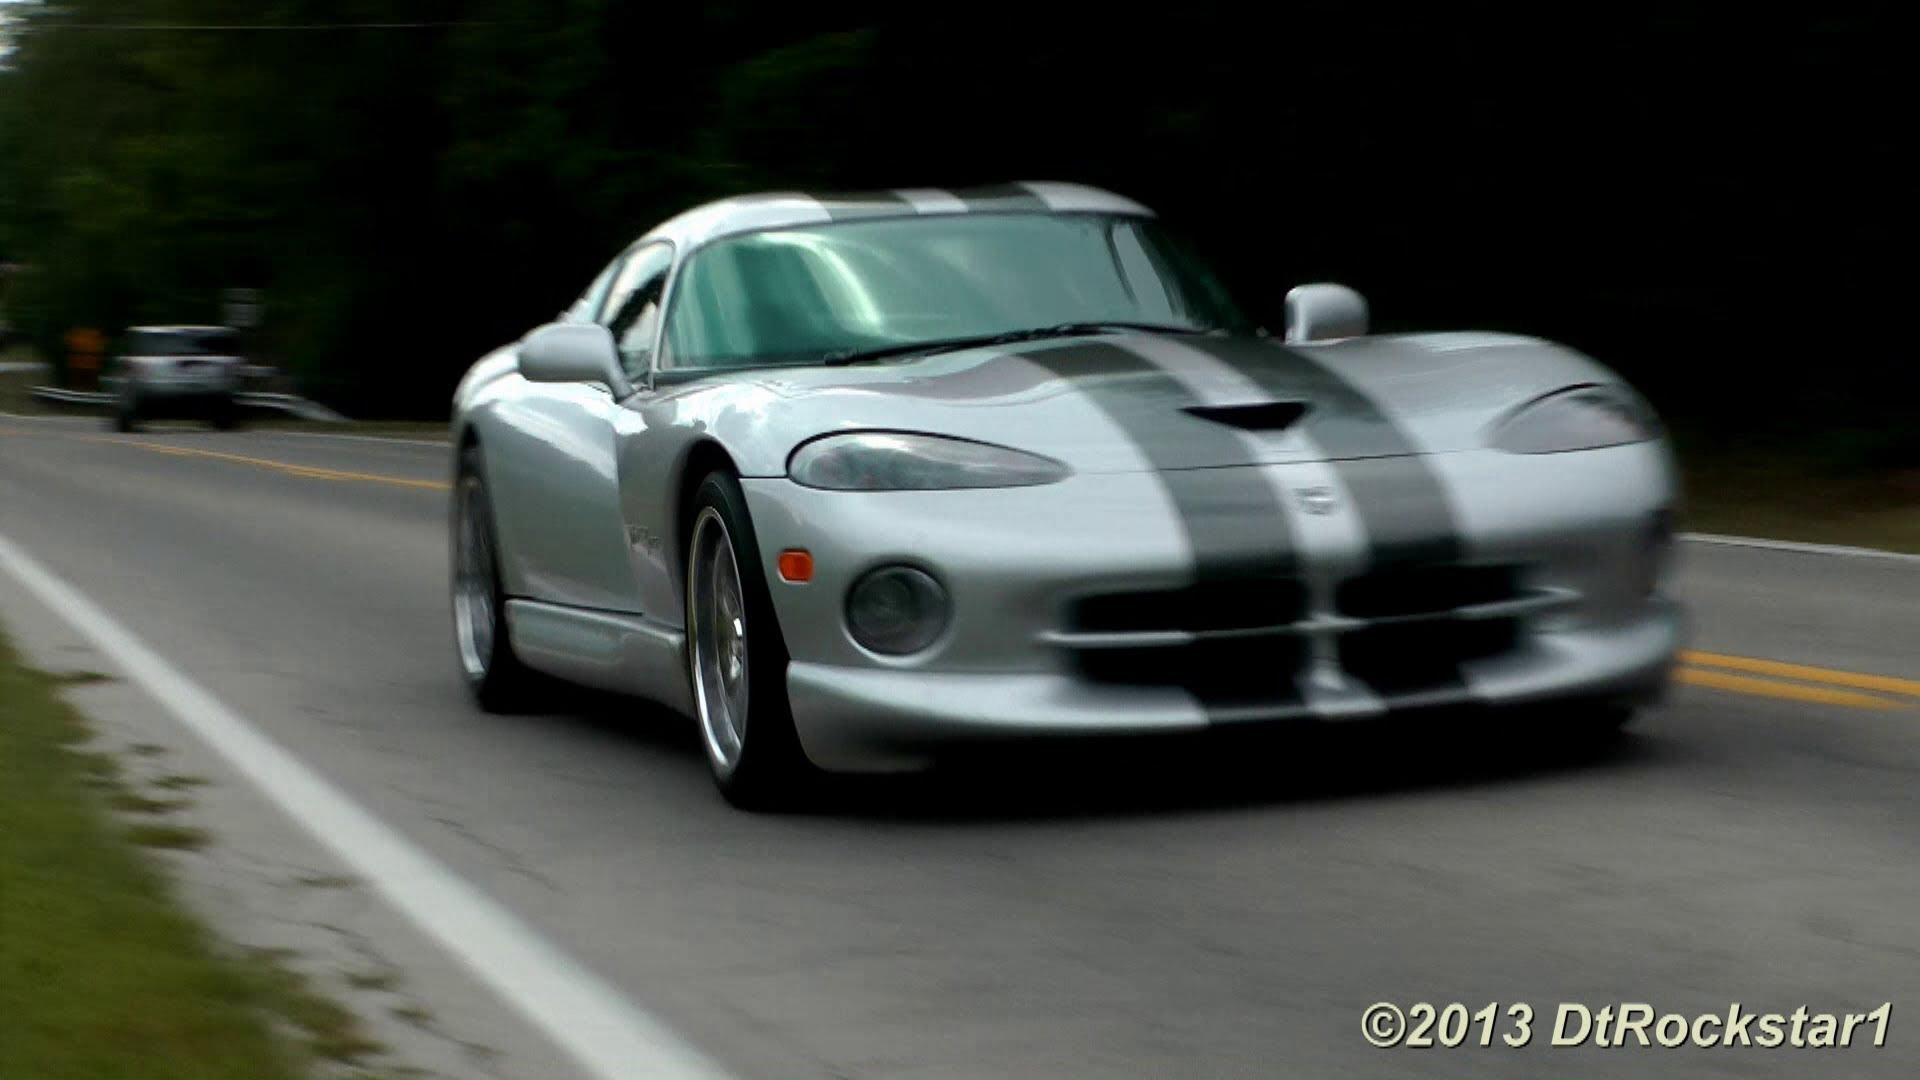 Crazy Loud Viper Reminds Us What The American Muscle Is All About